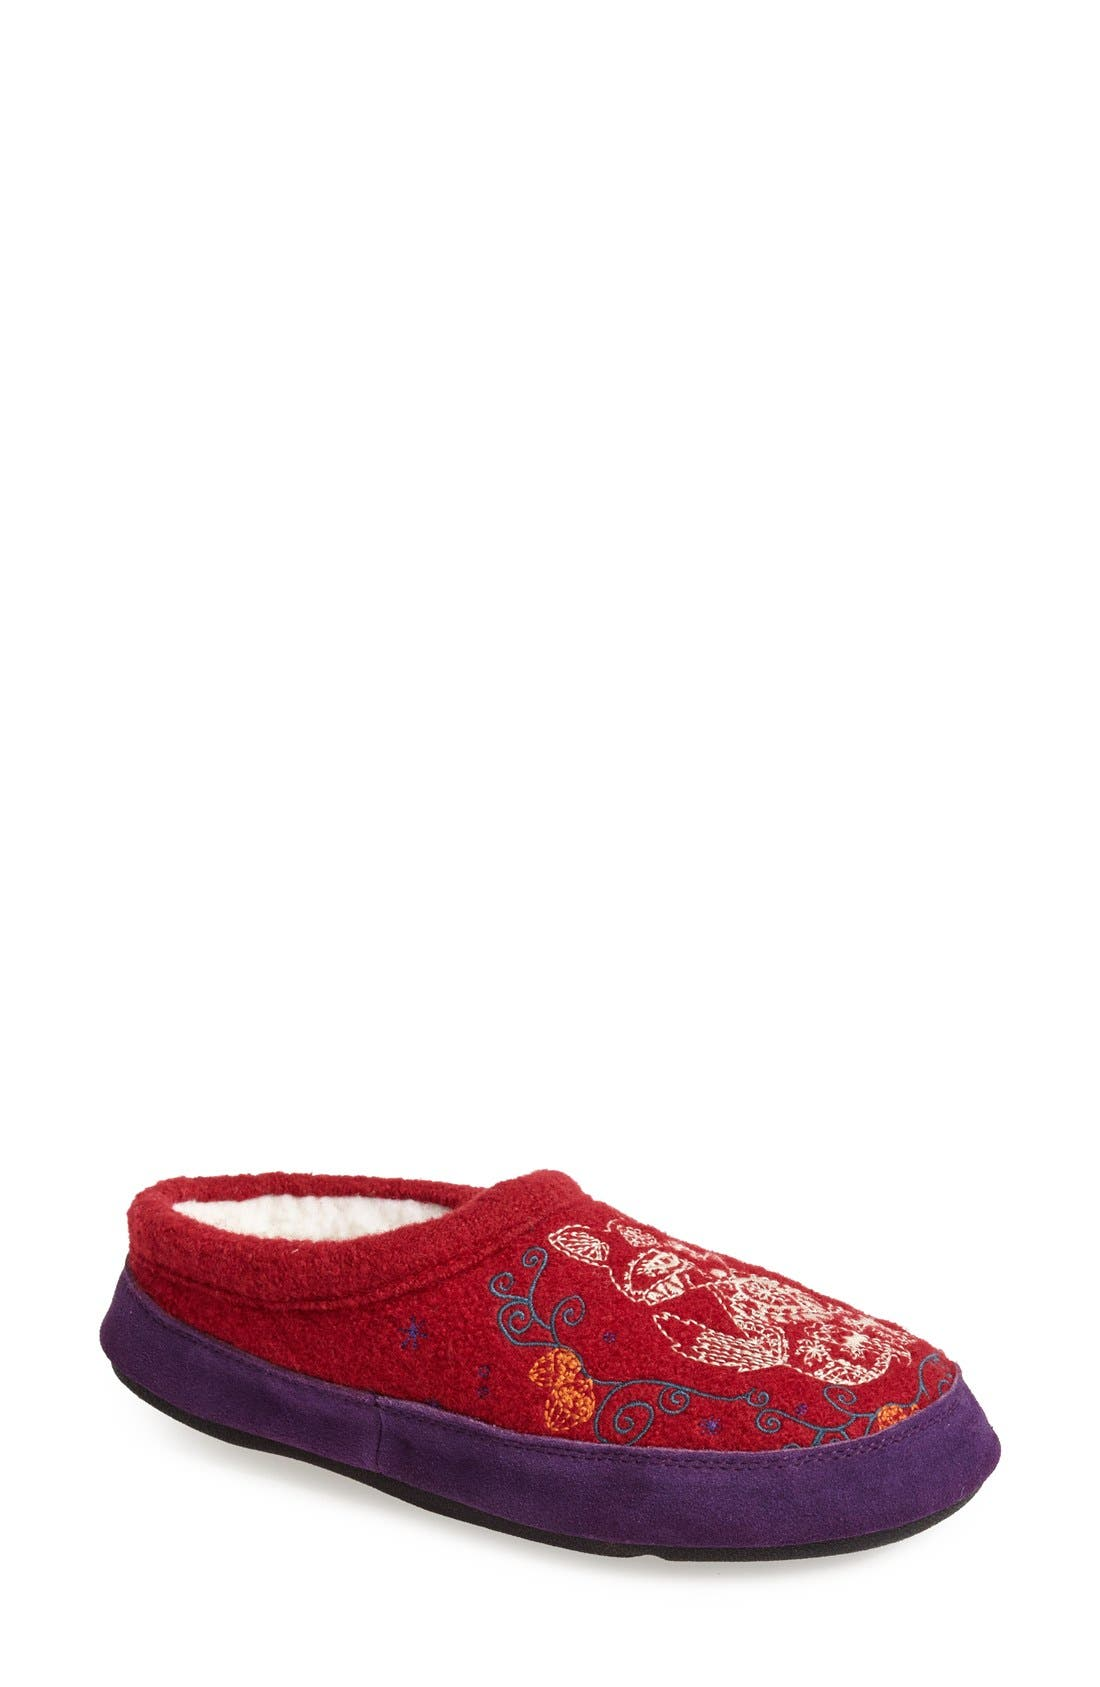 'Forest' Wool Mule Slipper,                             Main thumbnail 6, color,